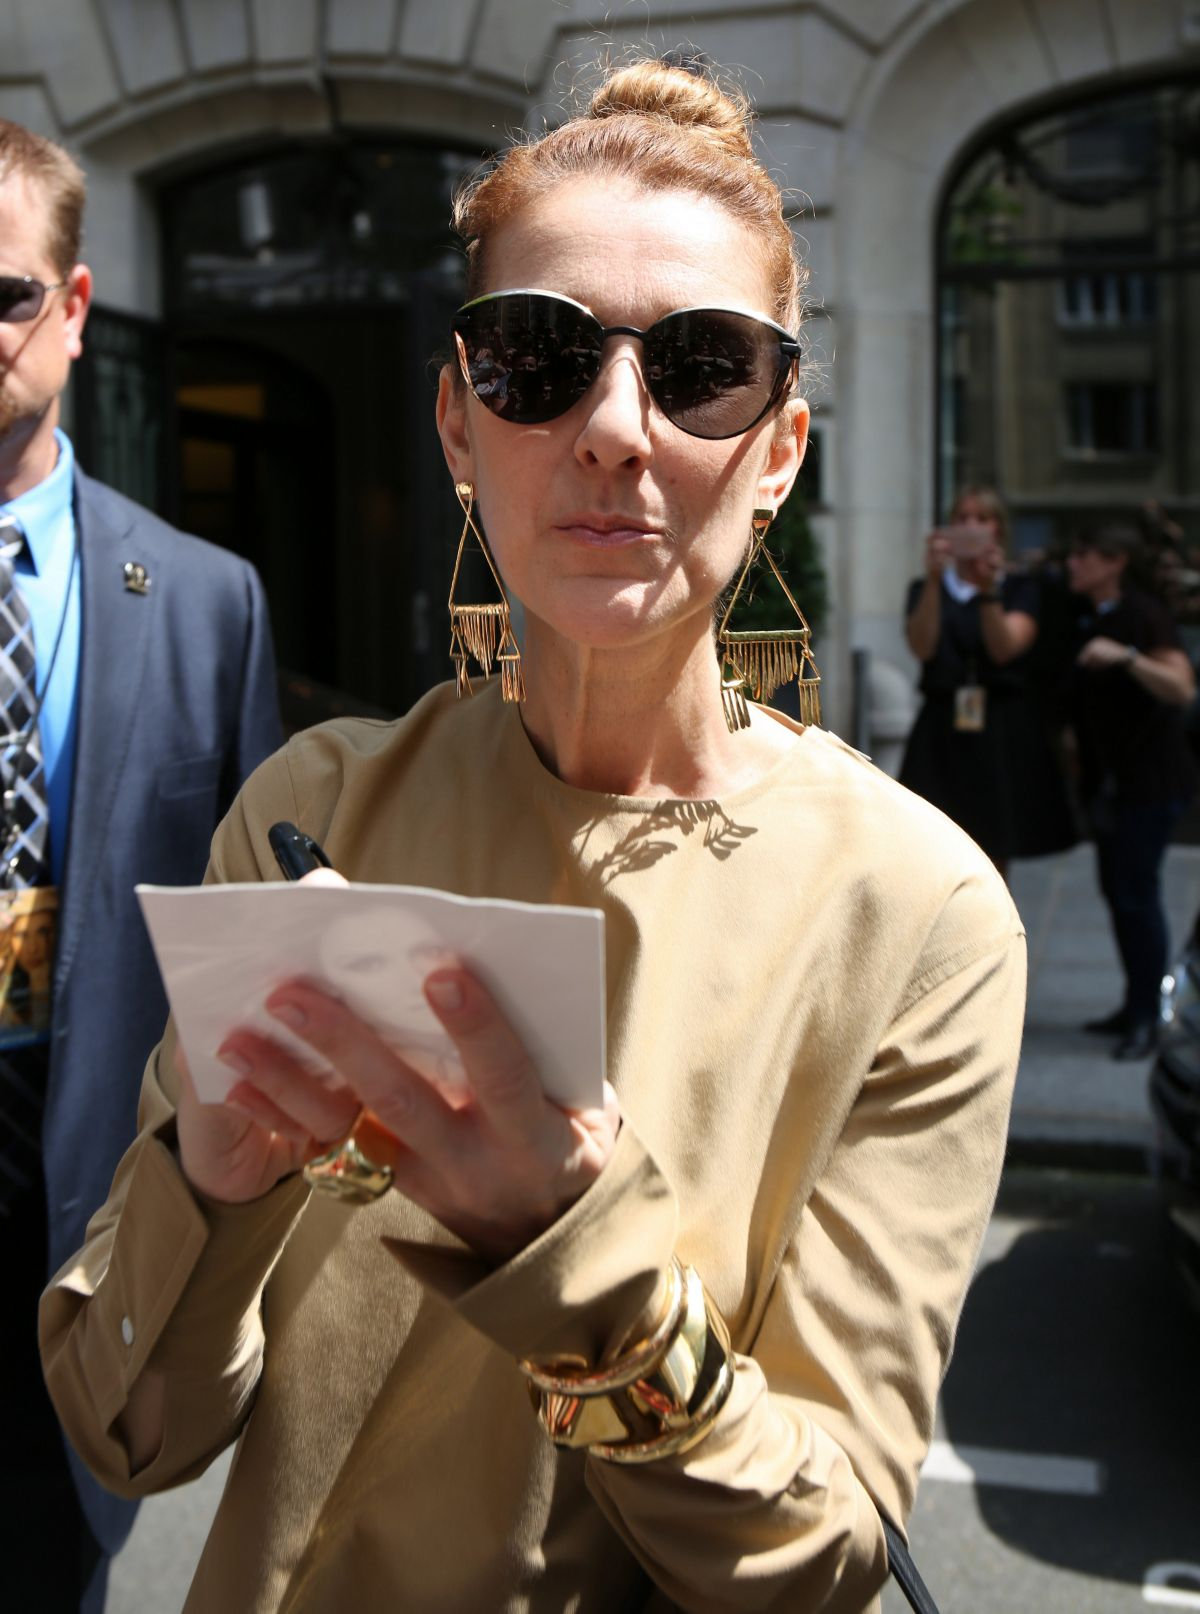 celine dion sunglasses 89hv  CELINE DION Outside Her Hotel in Paris 06/24/2016